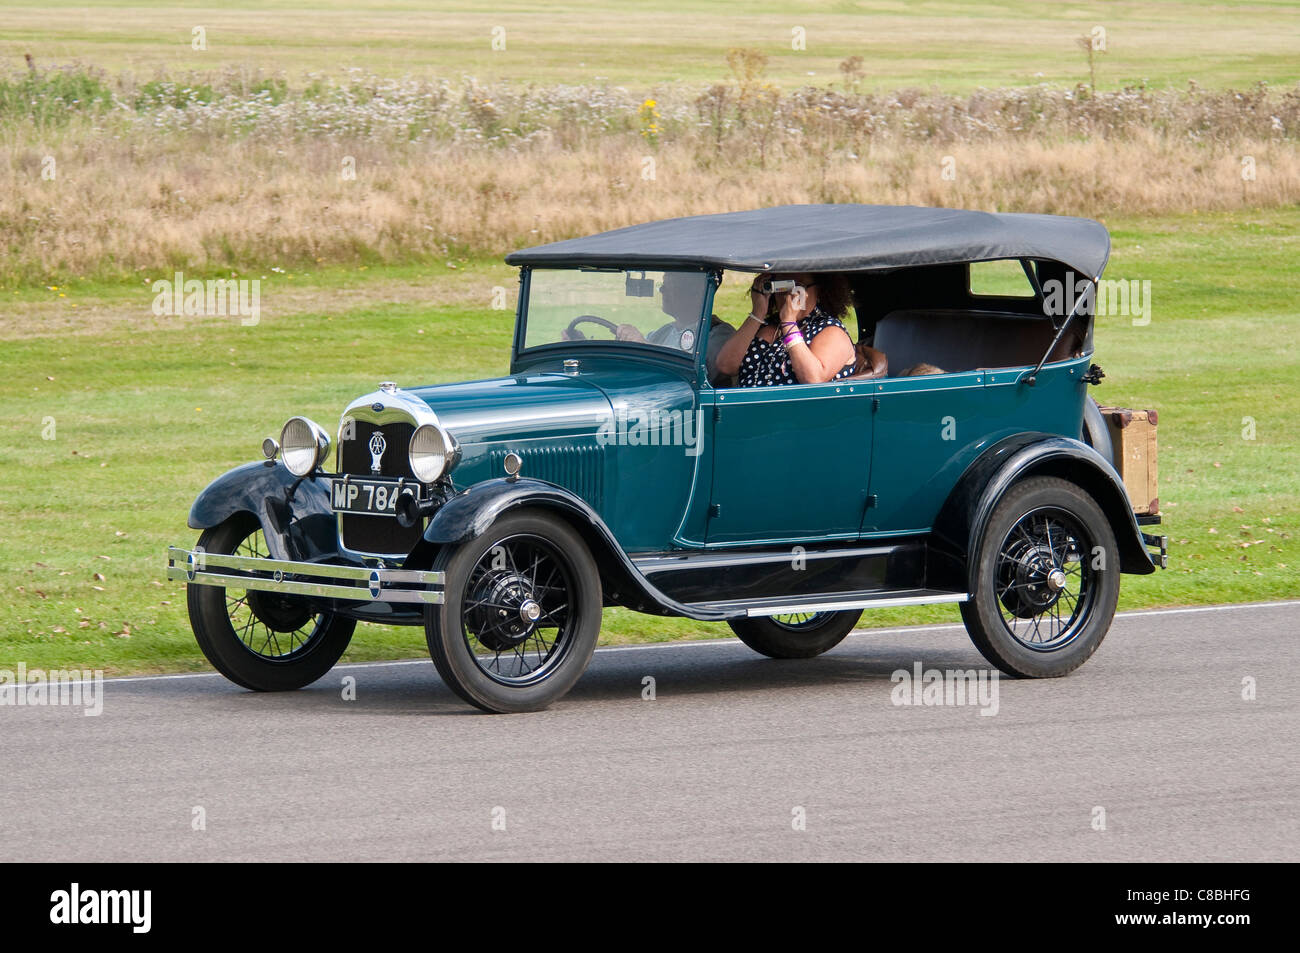 ford 1927 ford model a phaeton stock photo 39593220 alamy. Black Bedroom Furniture Sets. Home Design Ideas